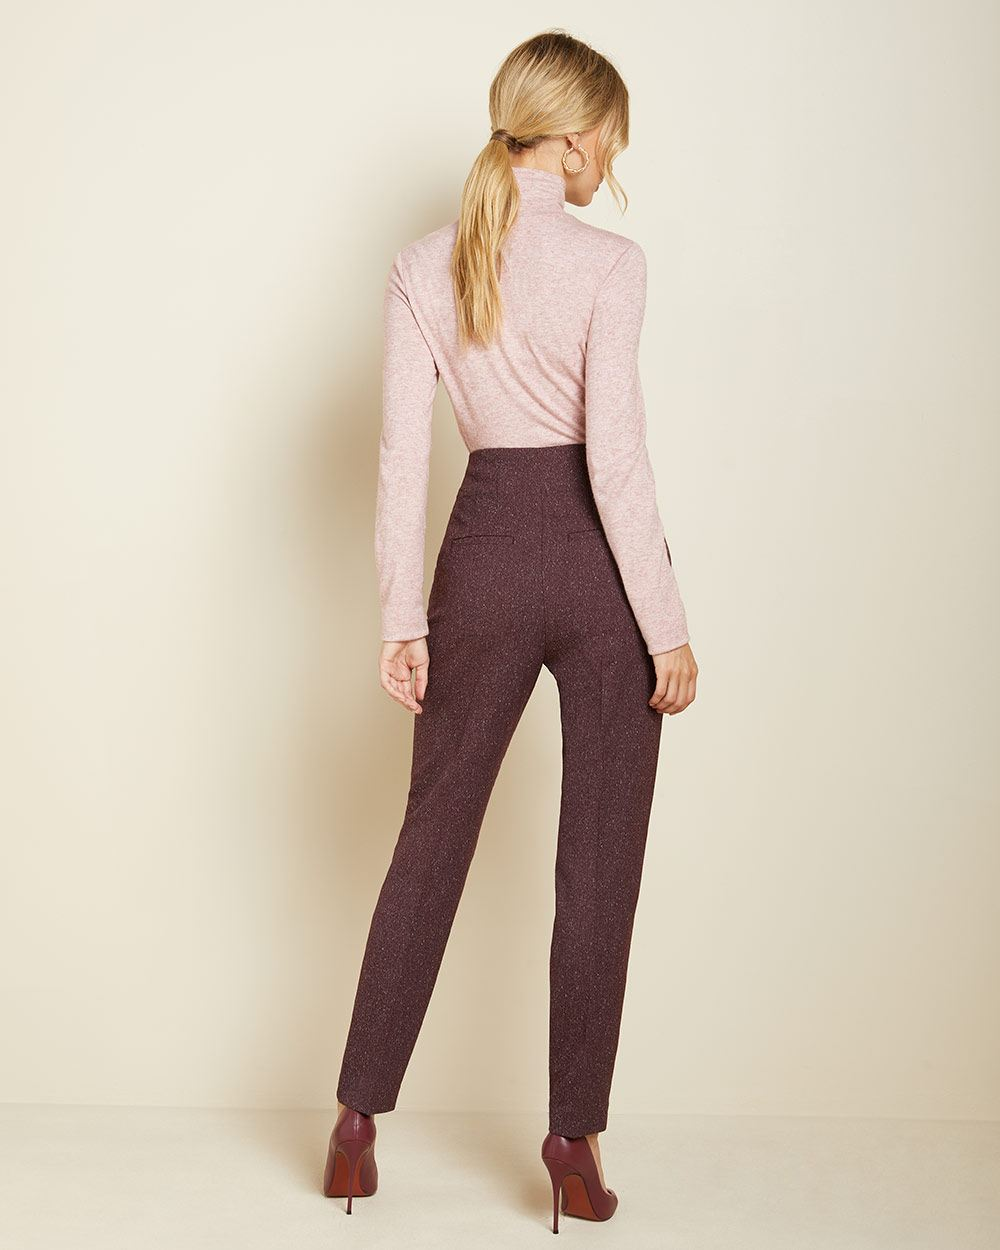 High-waist Dark Burgundy tweed pleated pant with buttoned waist